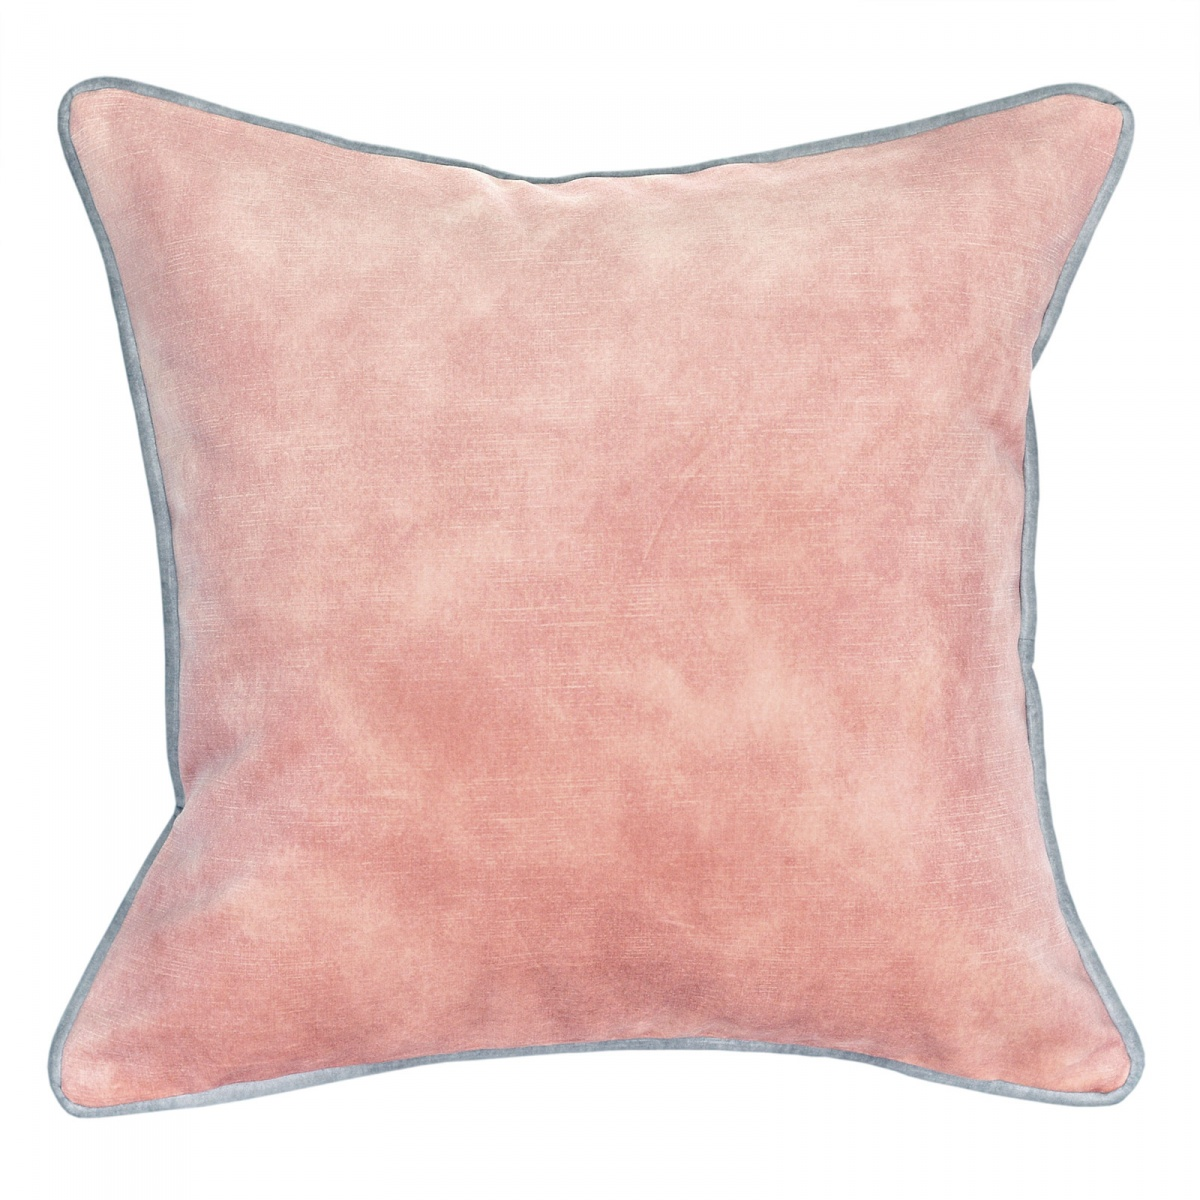 Lovely Blossom Velvet Cushion with Grey Piping - 45x45cm